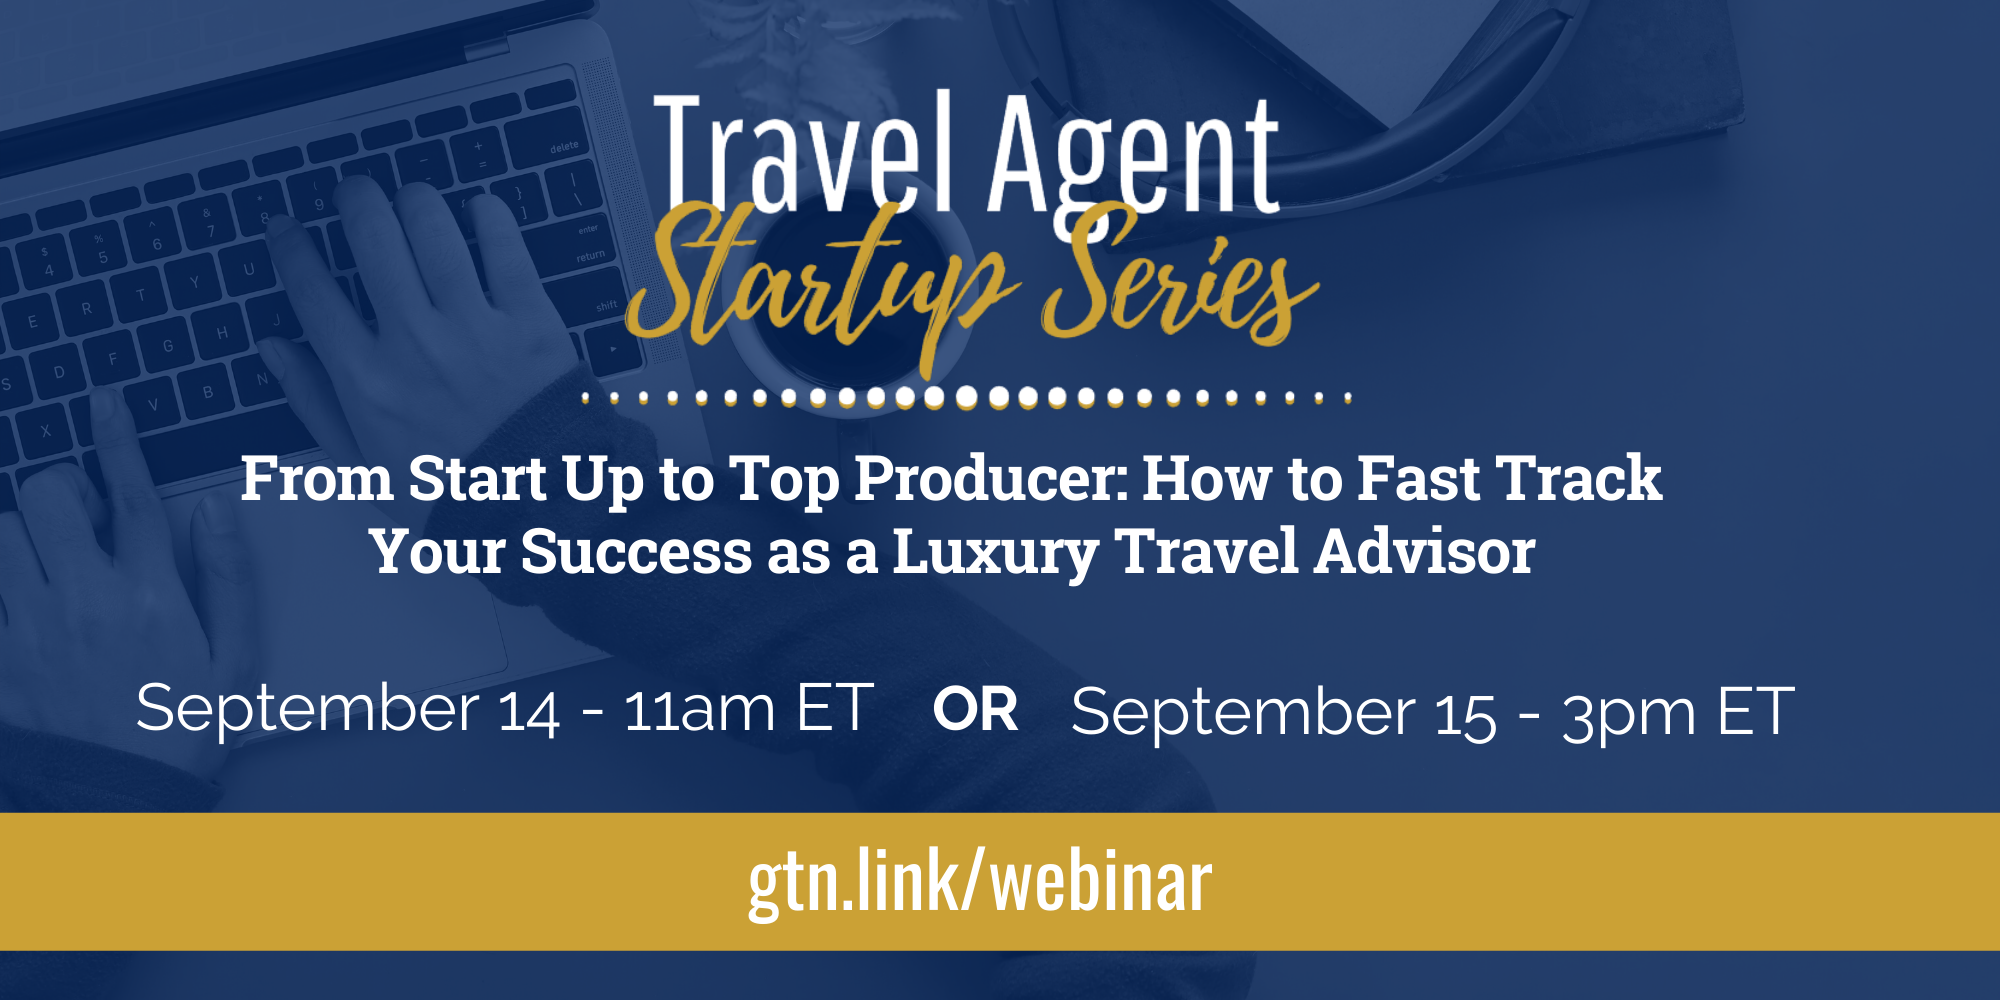 Travel Agent Startup Series: From Start Up to Top Producer!